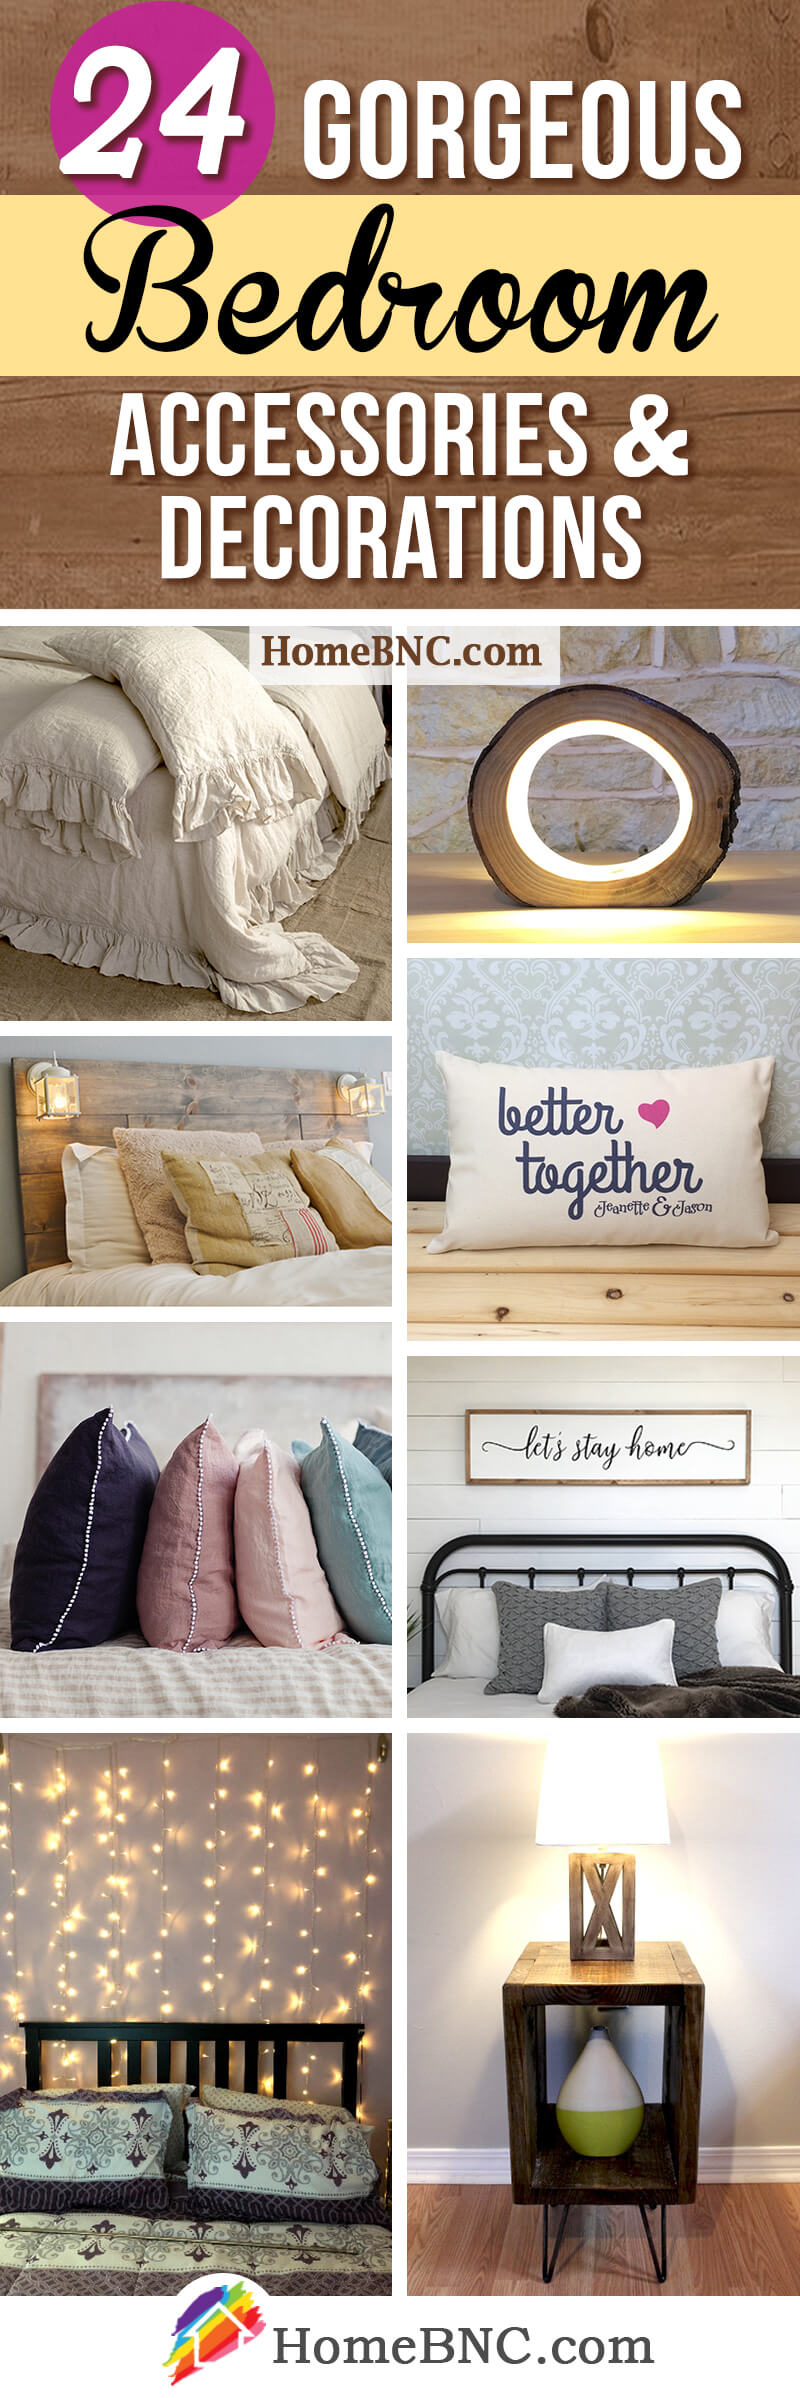 Etsy Bedroom Decoration Ideas